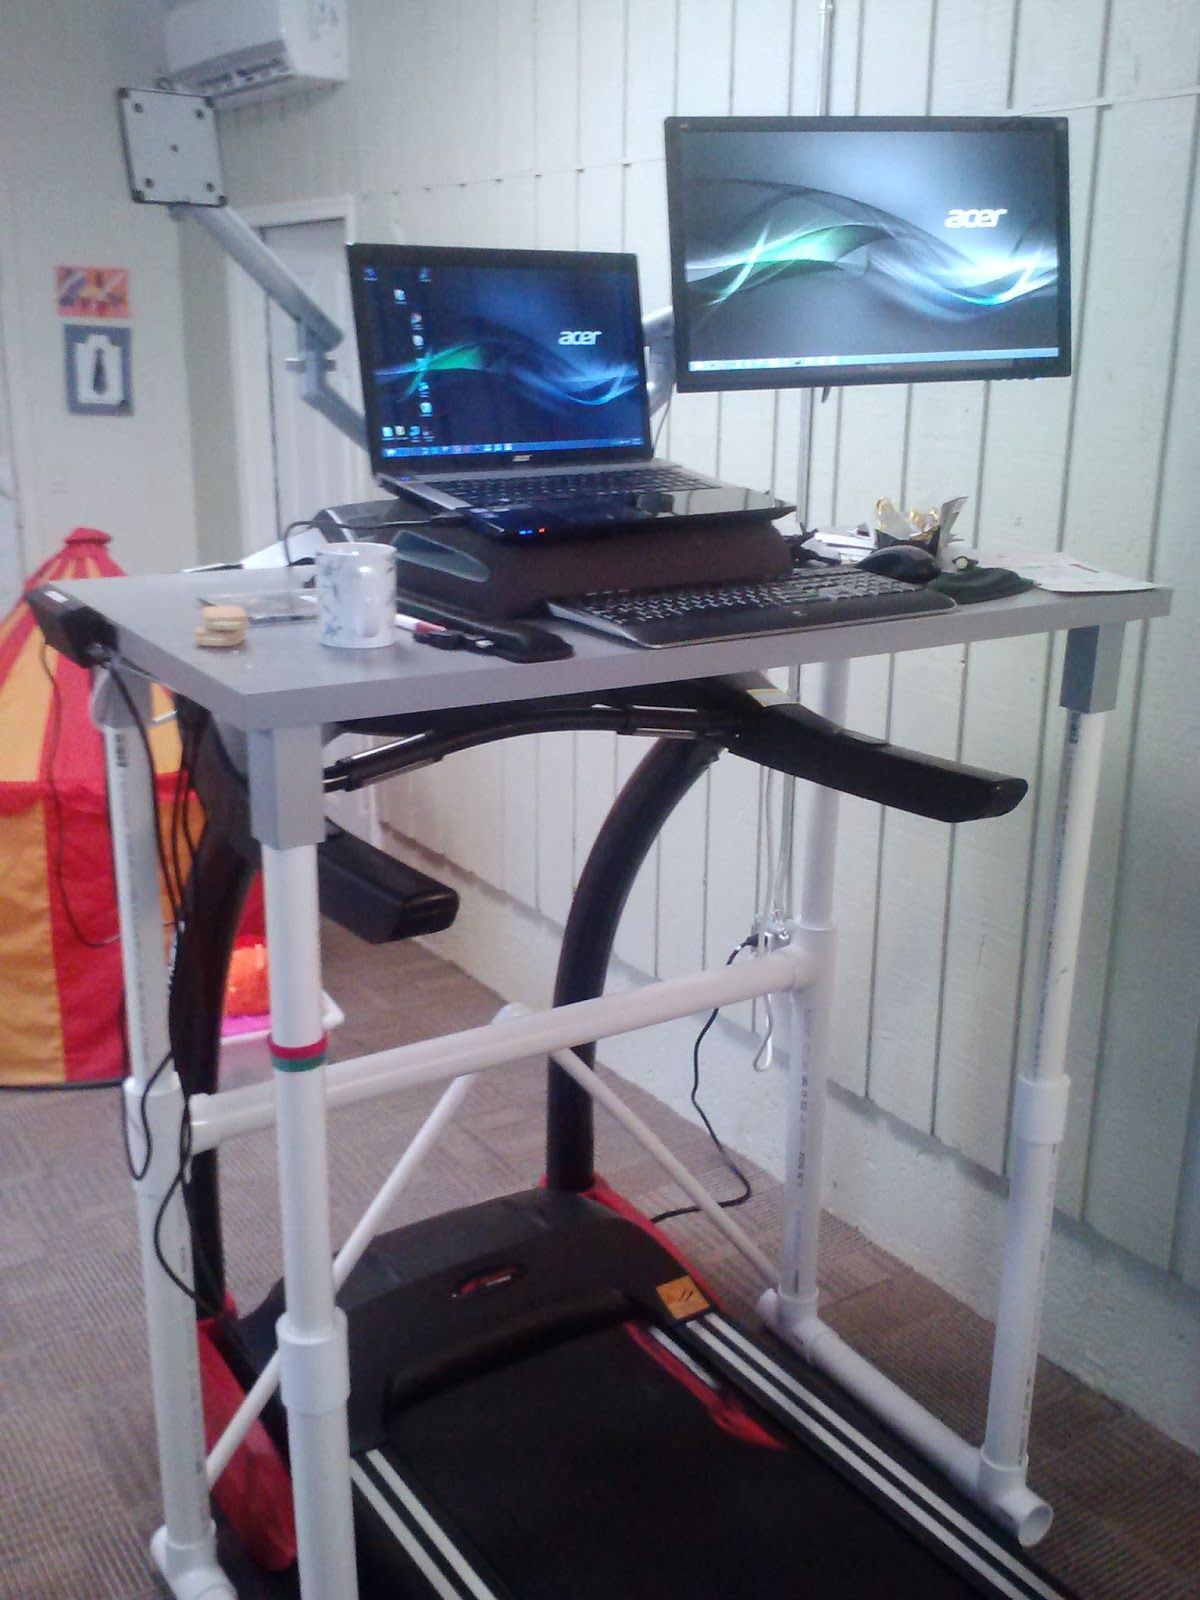 Superior DIY PVC IKEA Treadmill Desk Check Out The Latest Version Built This Treadmill  Desk For About A Hundred Bucks.